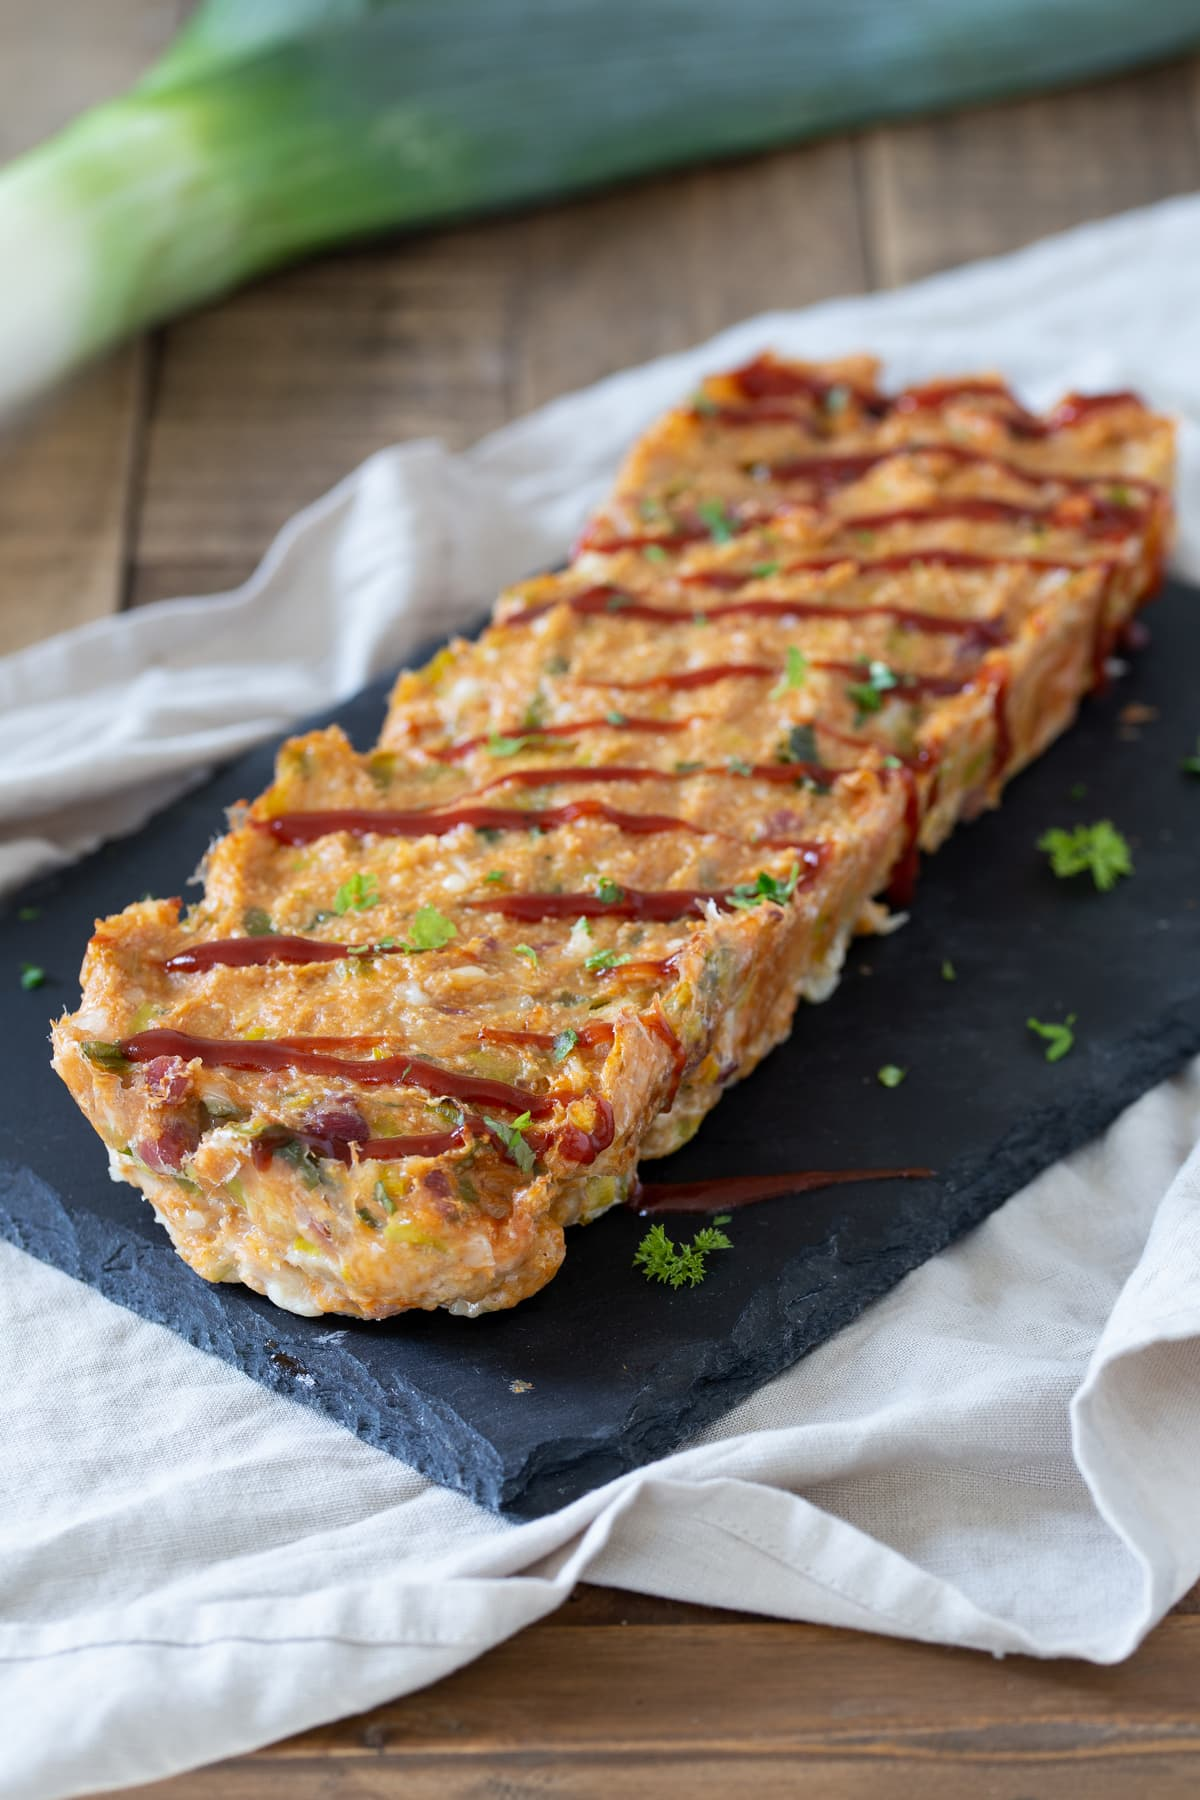 Chicken meatloaf drizzled with BBQ sauce.